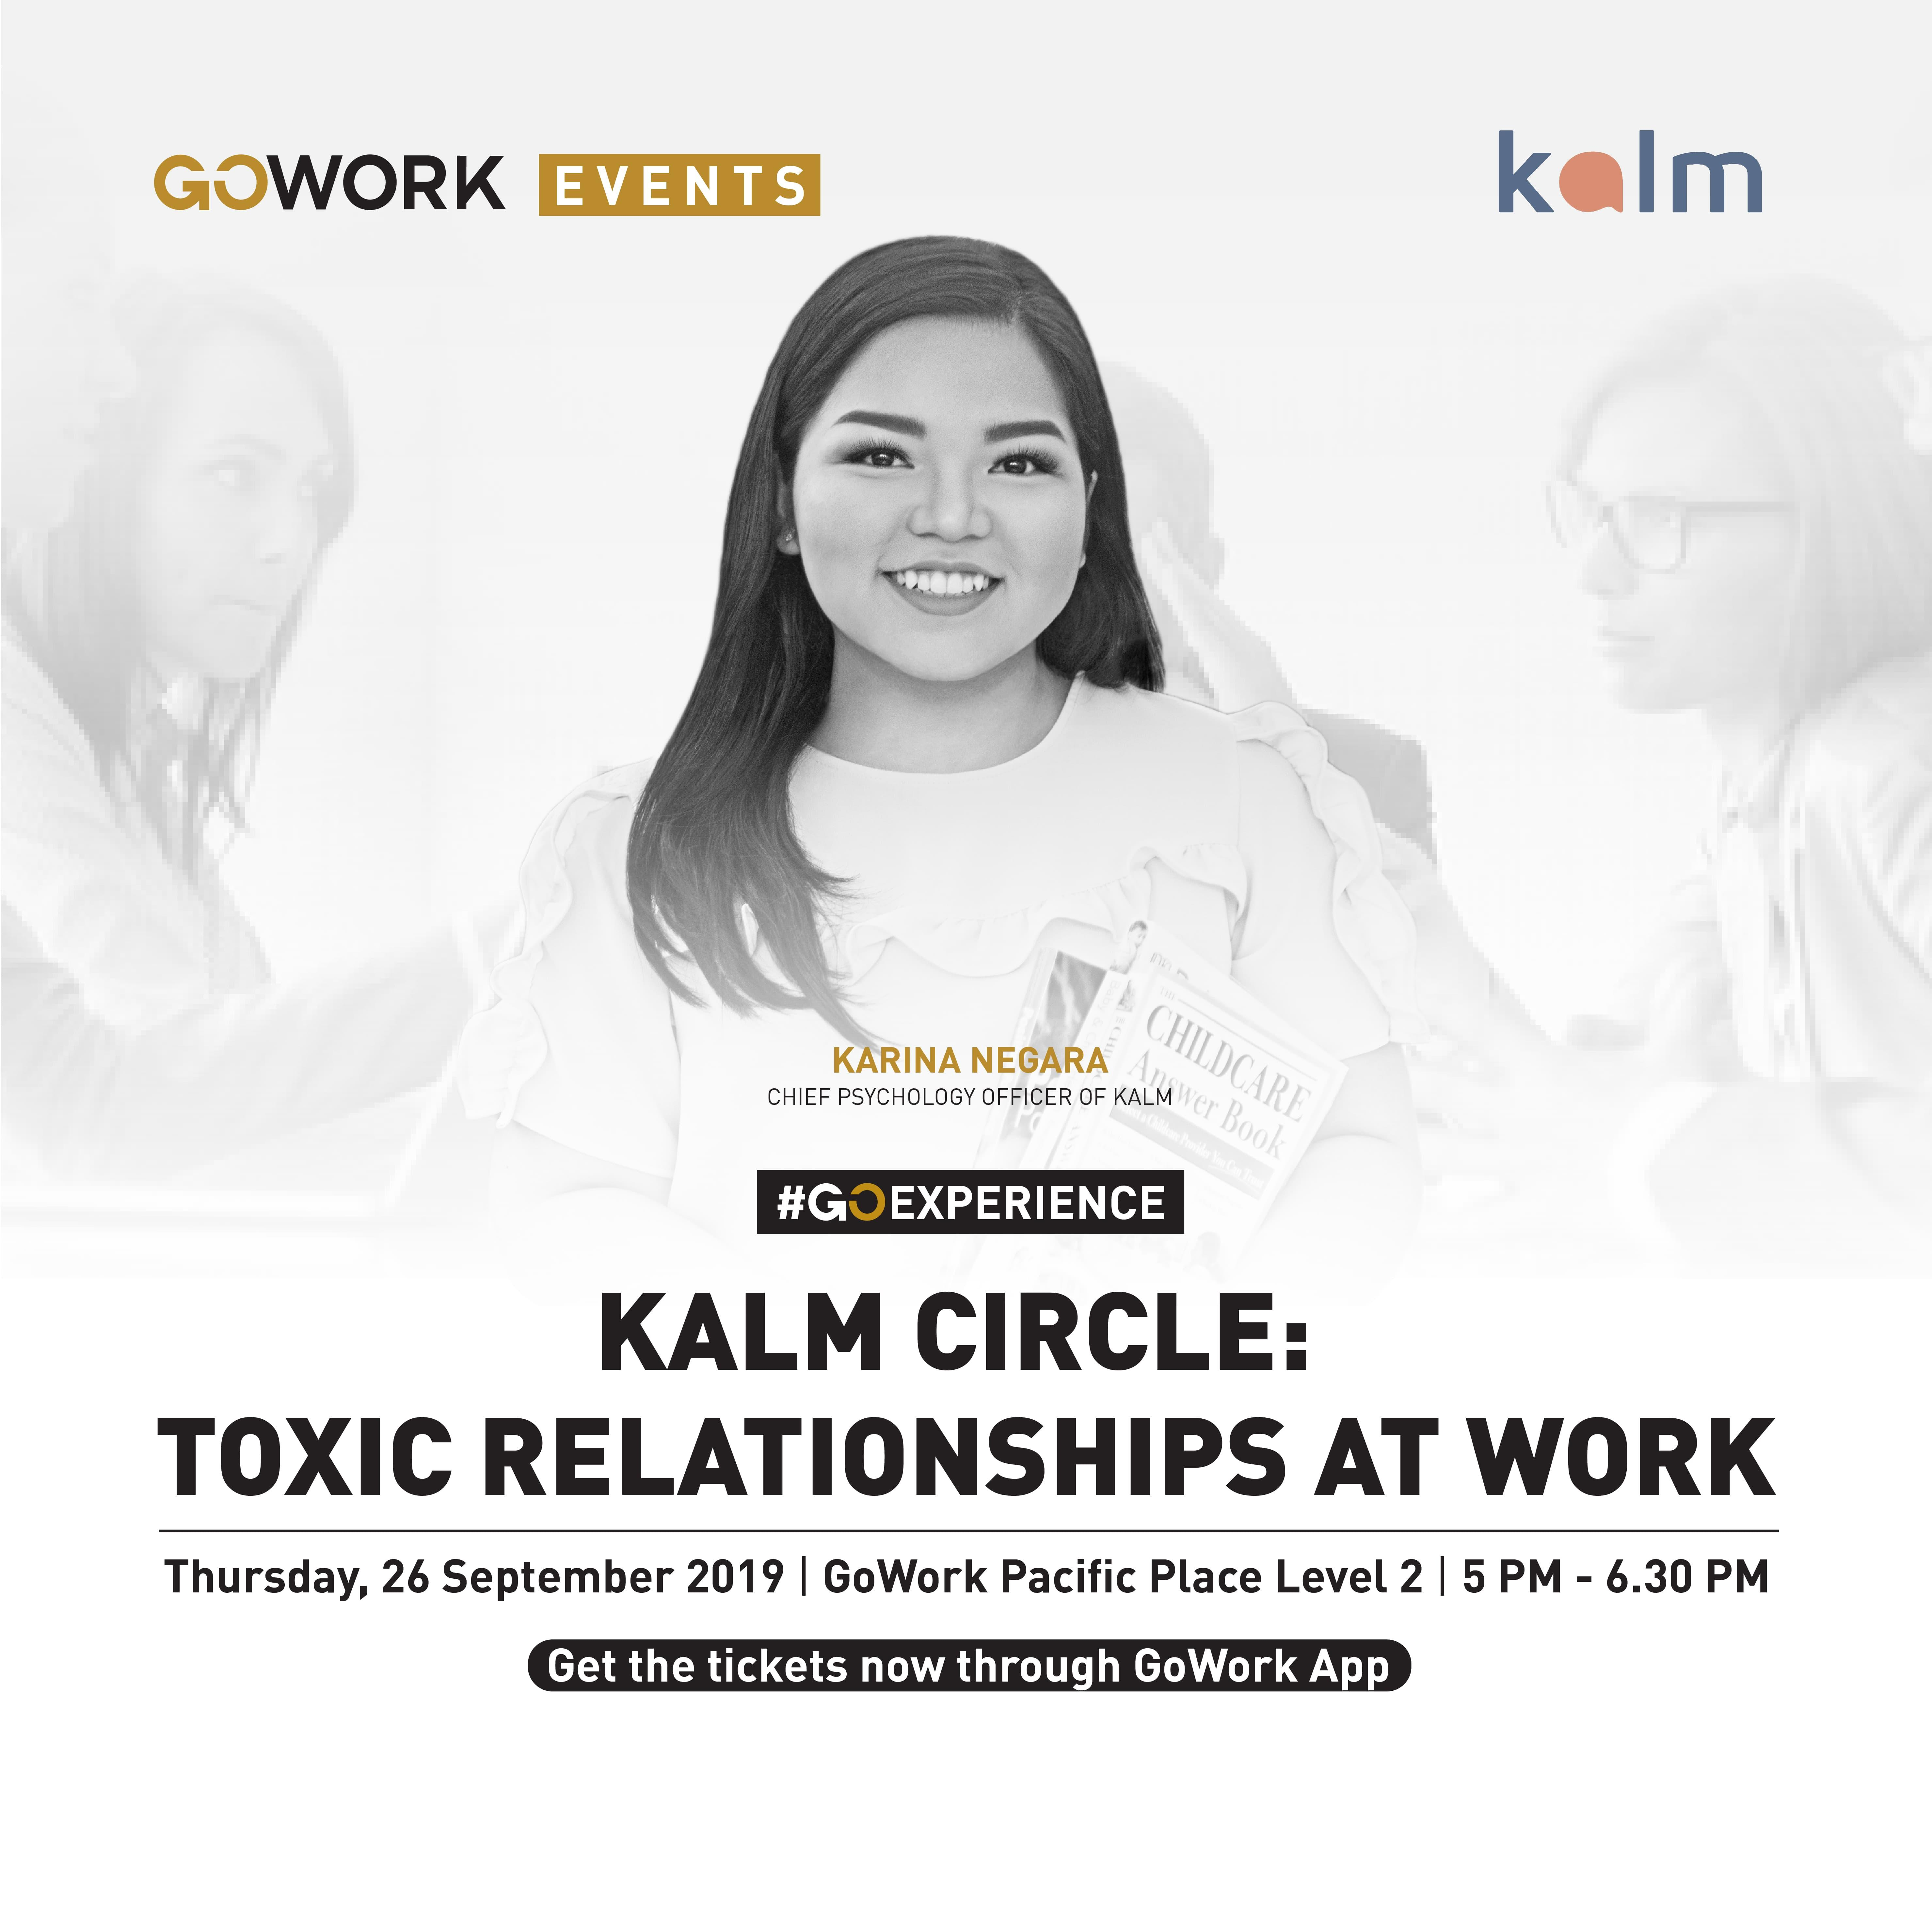 TOXIC RELATIONSHIP AT WORK